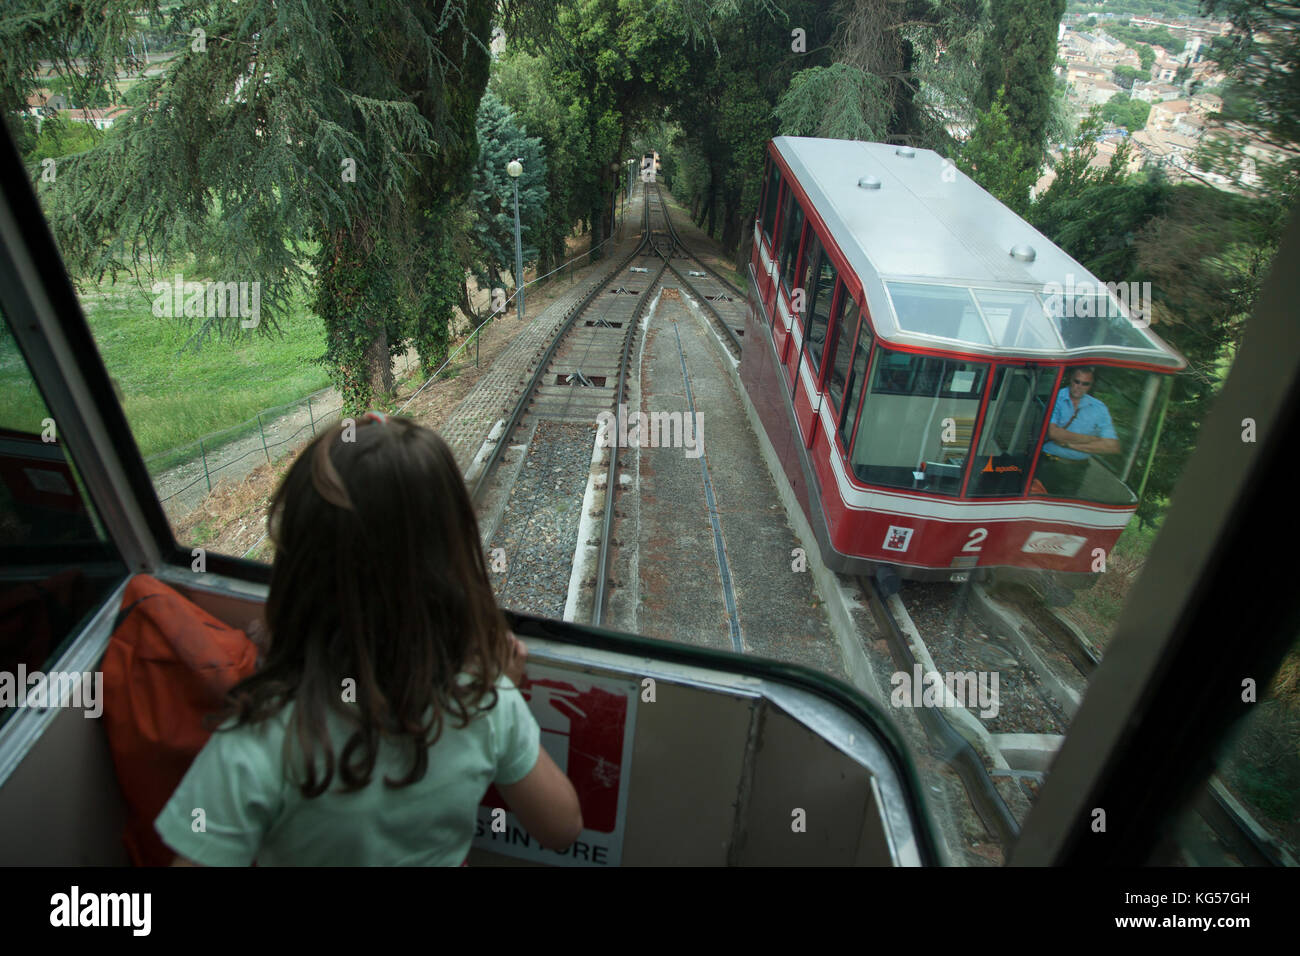 A young girl looks down the tracks of the Funicular in the Umbrian town of Orvieto, Italy. - Stock Image